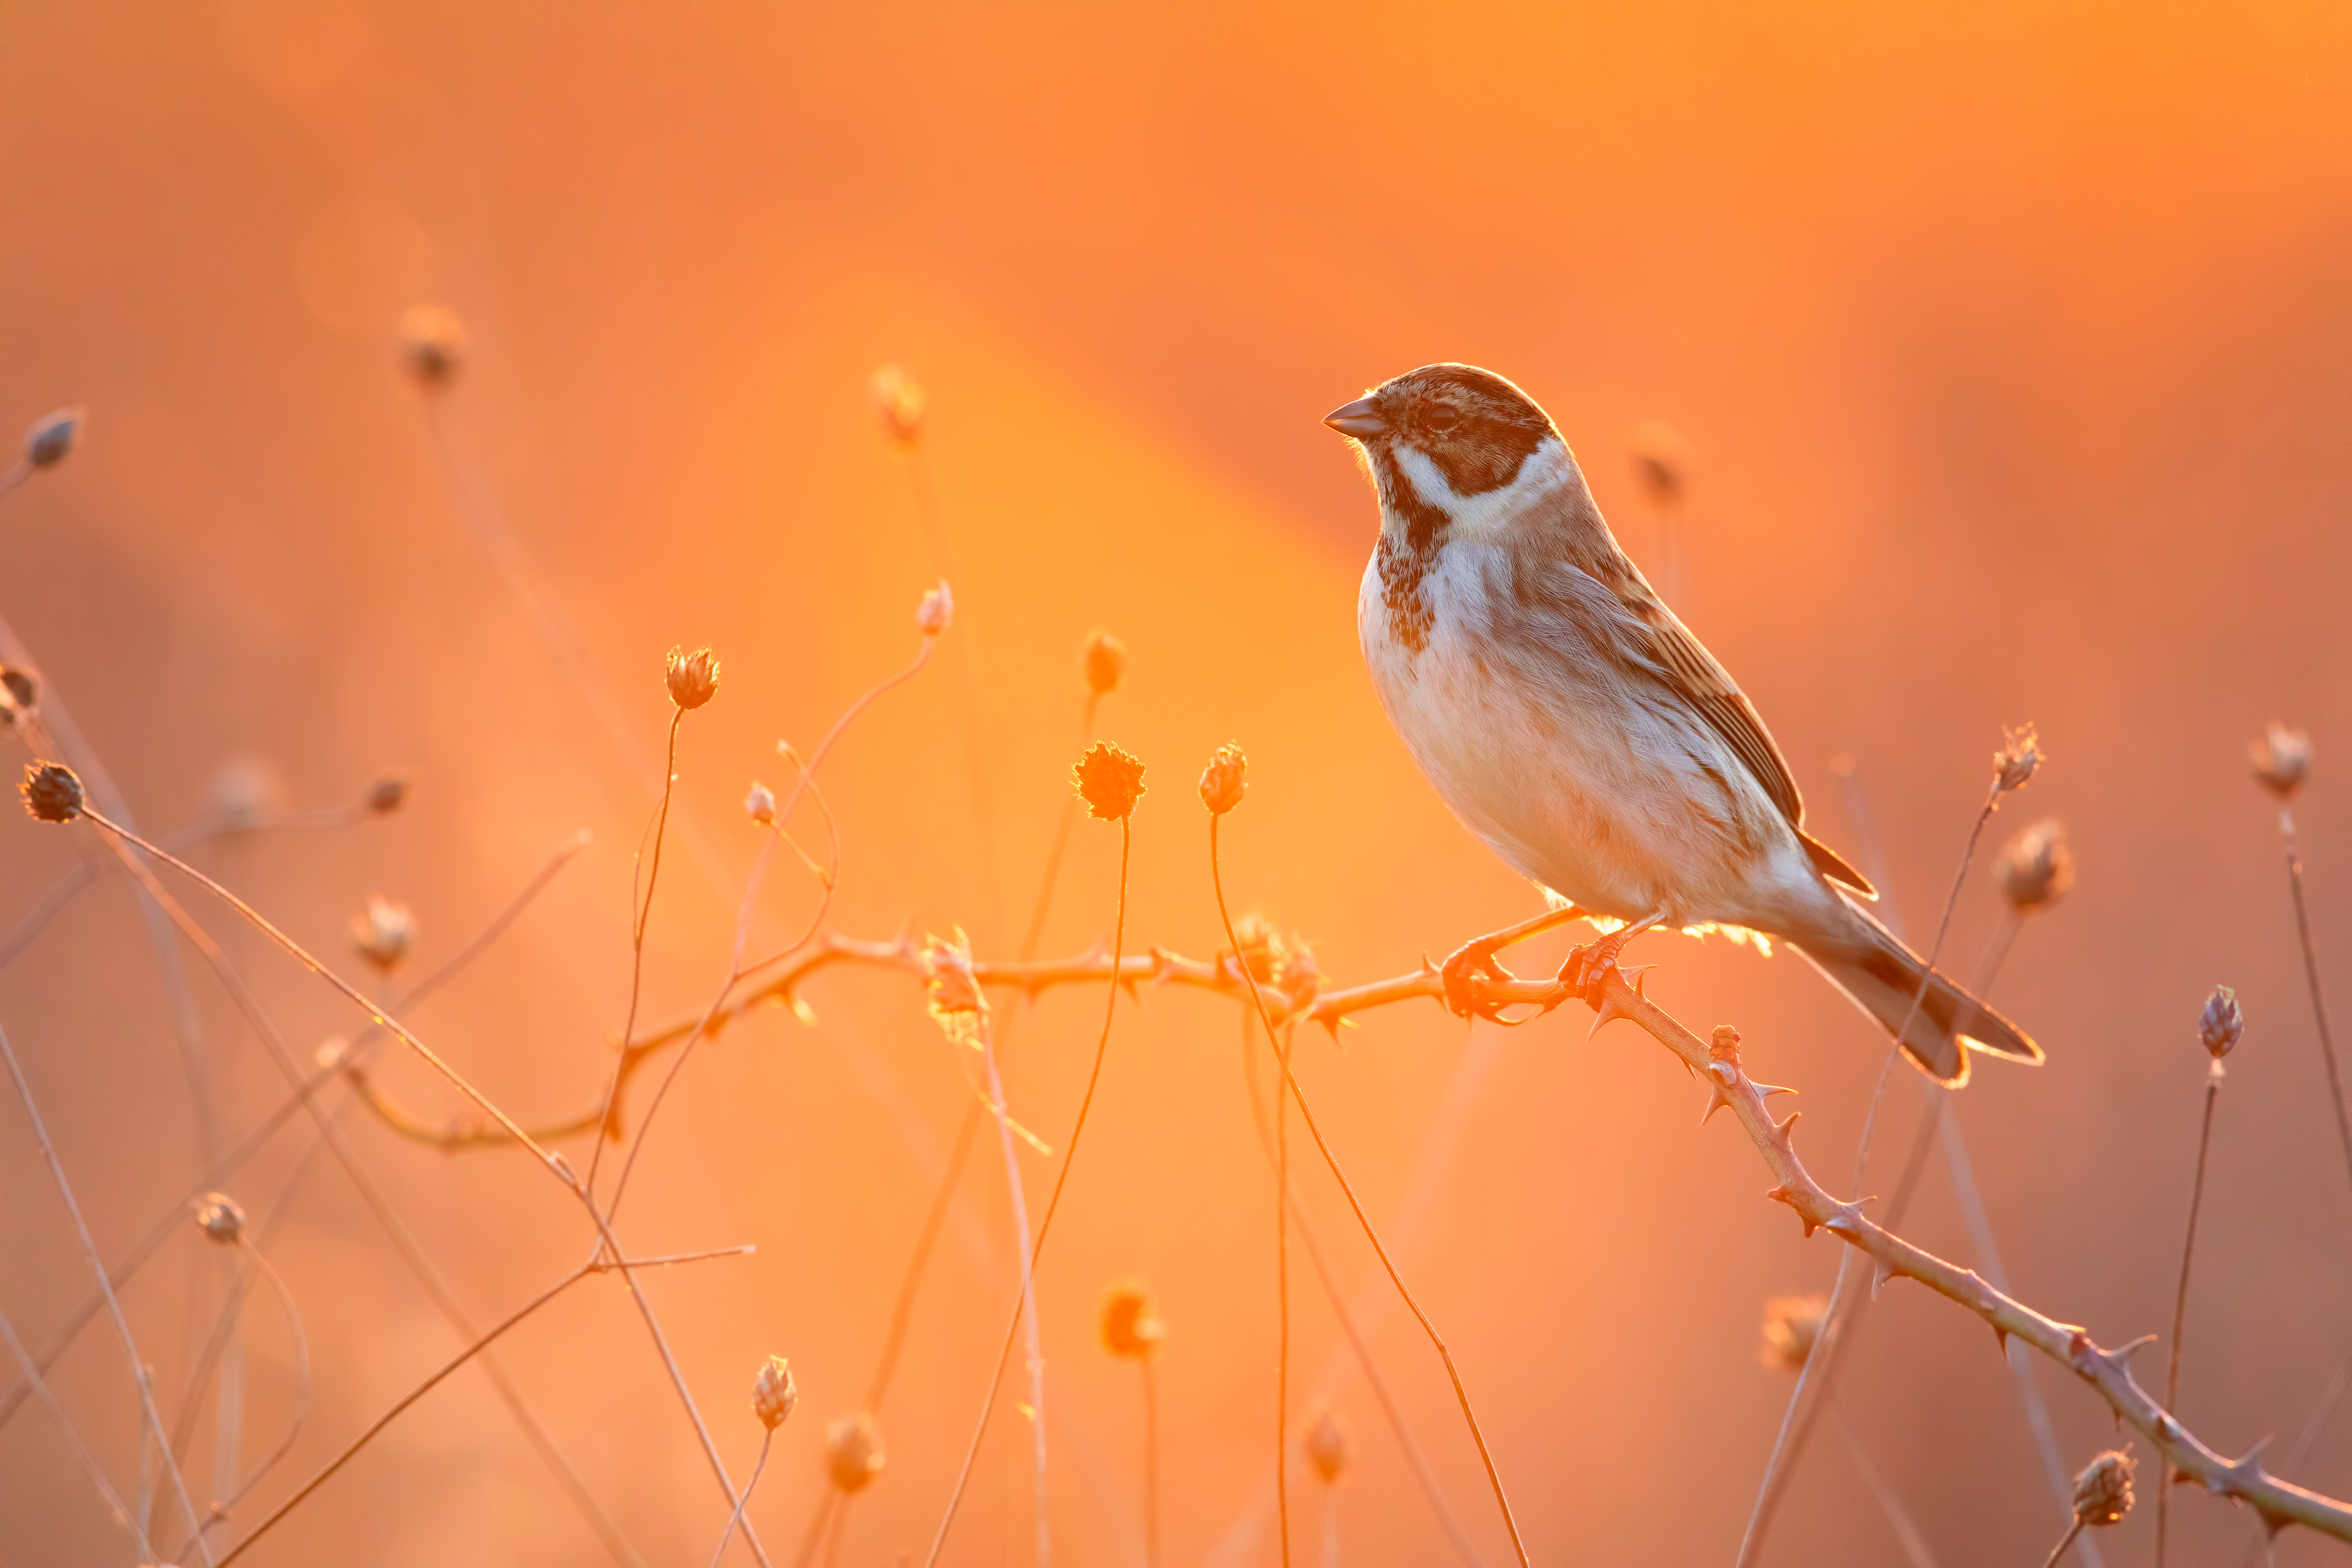 Cute Little Bird 4k Hd Birds 4k Wallpapers Images Backgrounds Photos And Pictures Birds wallpapers for 4k, 1080p hd and 720p hd resolutions and are best suited for desktops, android phones, tablets, ps4 wallpapers. hdqwalls